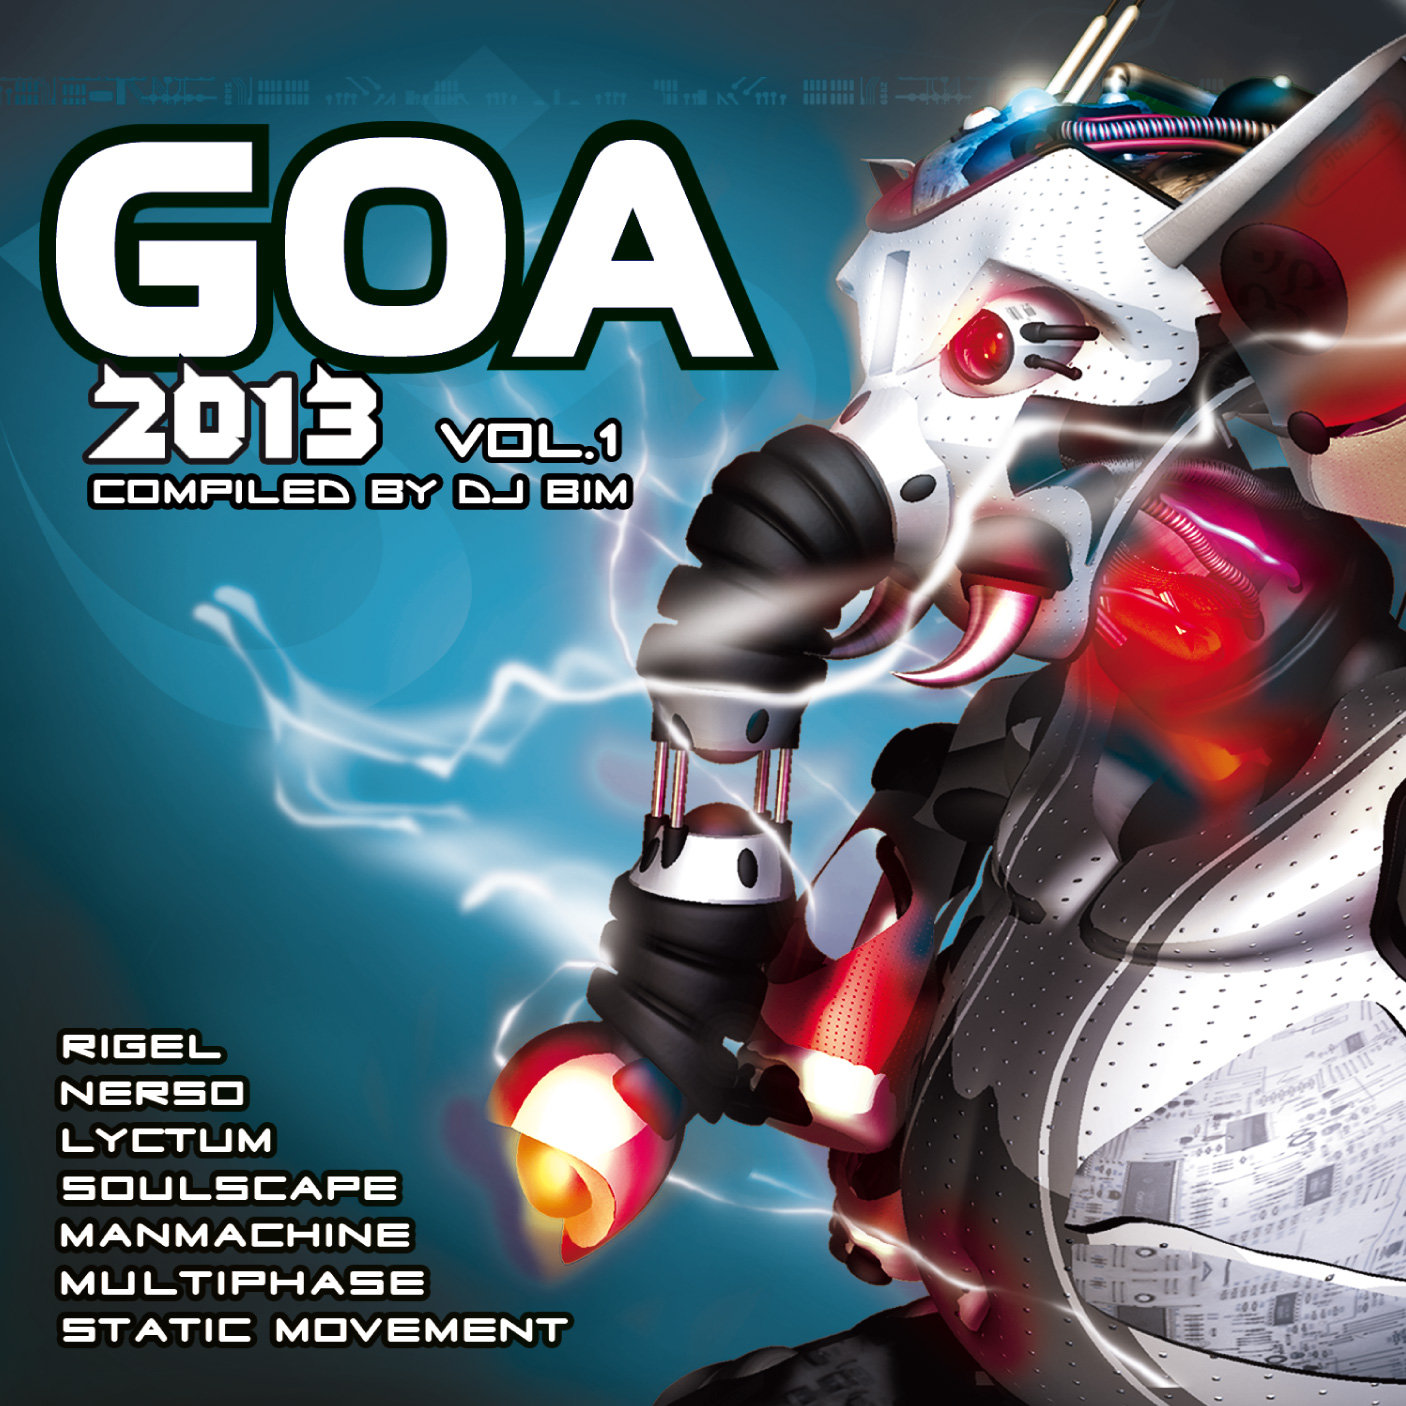 VA - Goa 2013 Vol. 1 (2013) [MULTI]